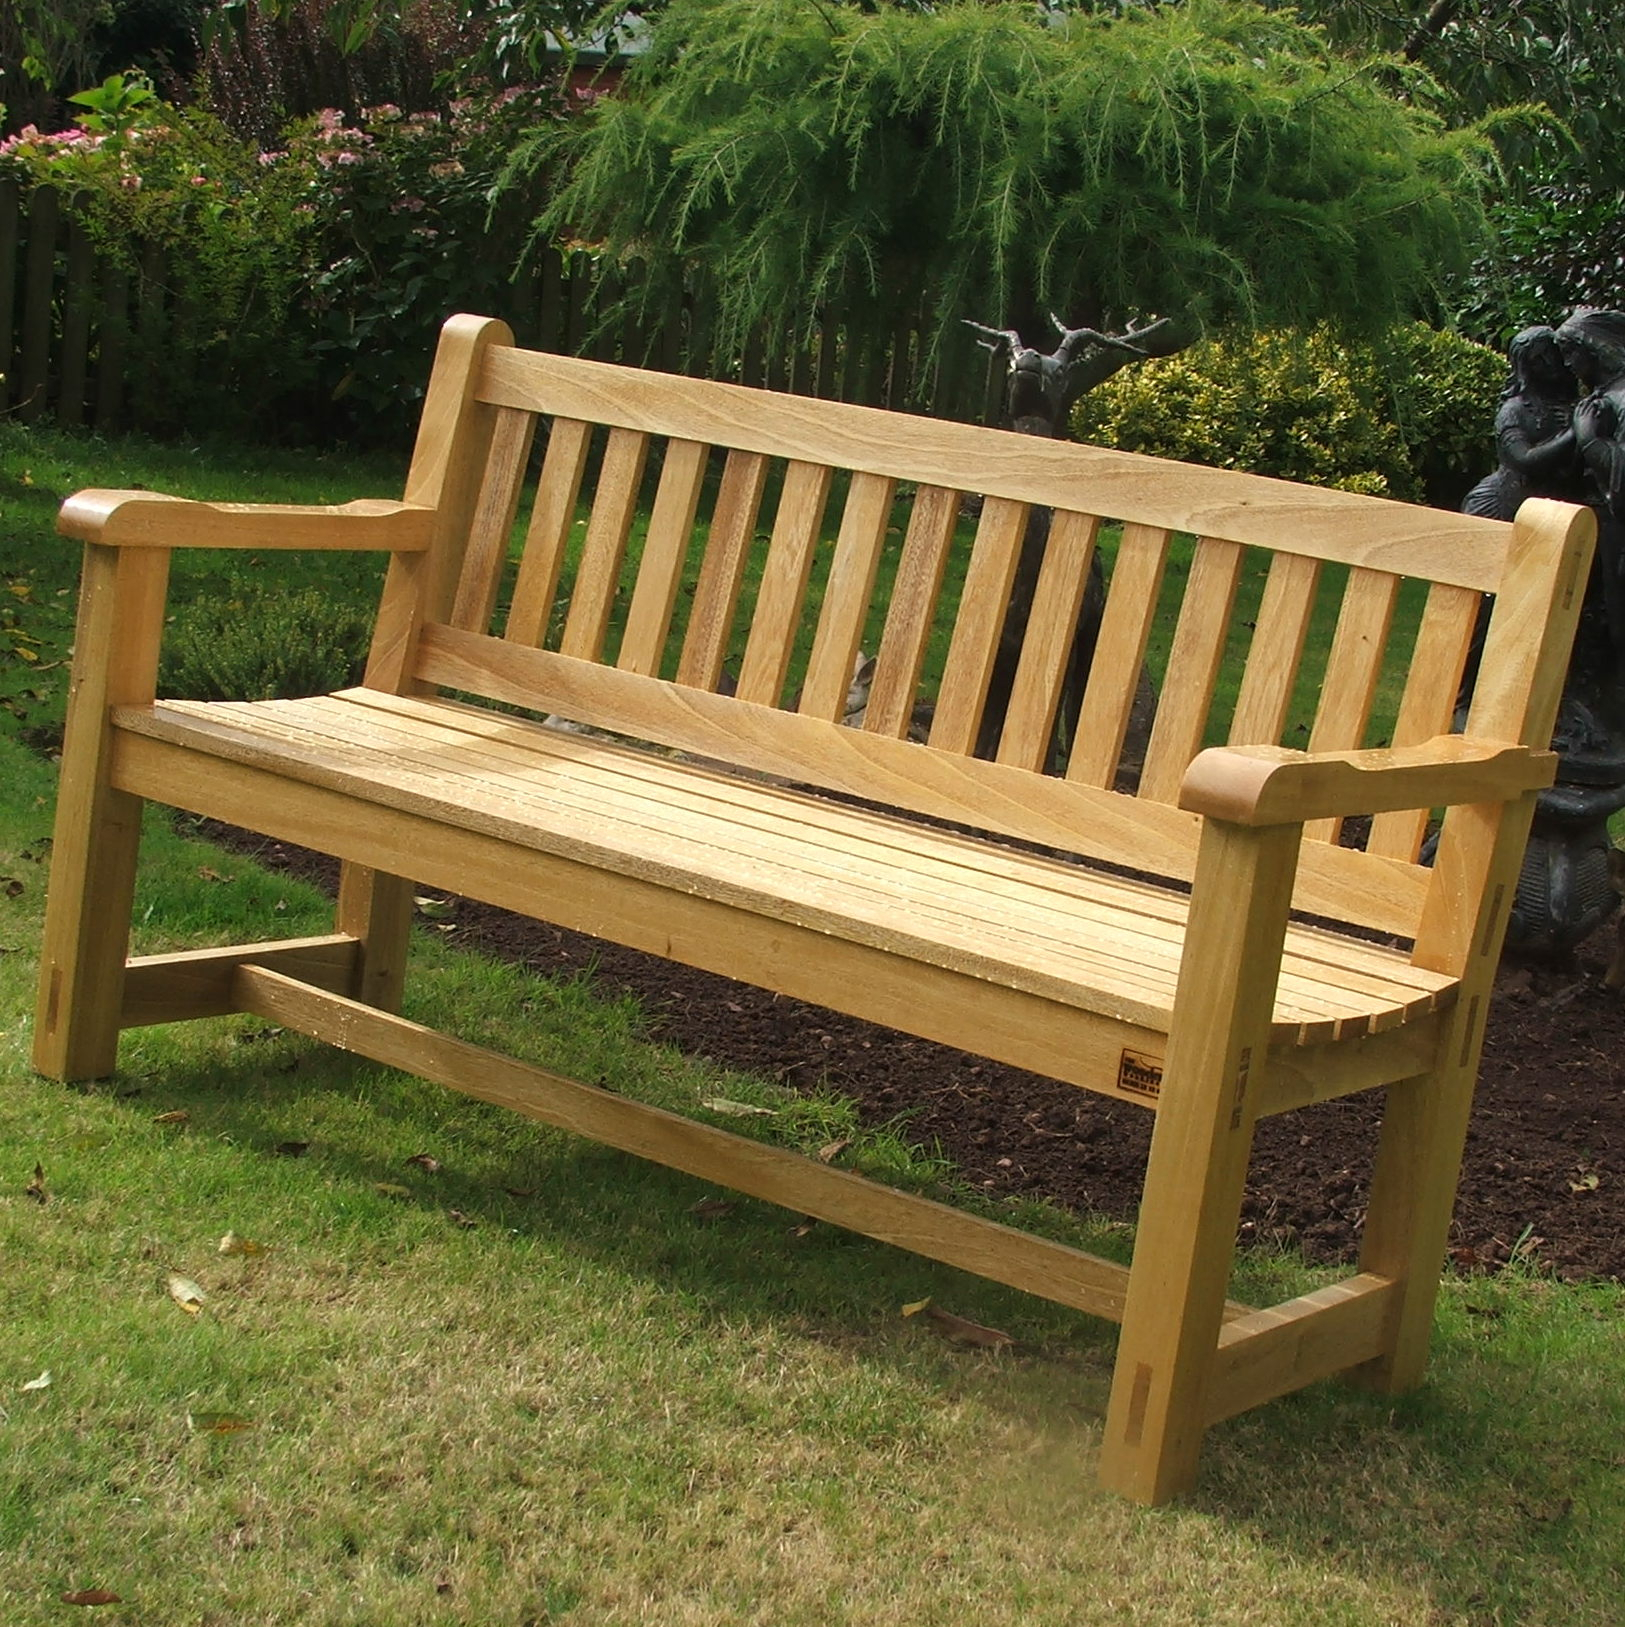 Garden Benches Seats Ideas Pertaining To Wood Garden Benches (View 9 of 25)